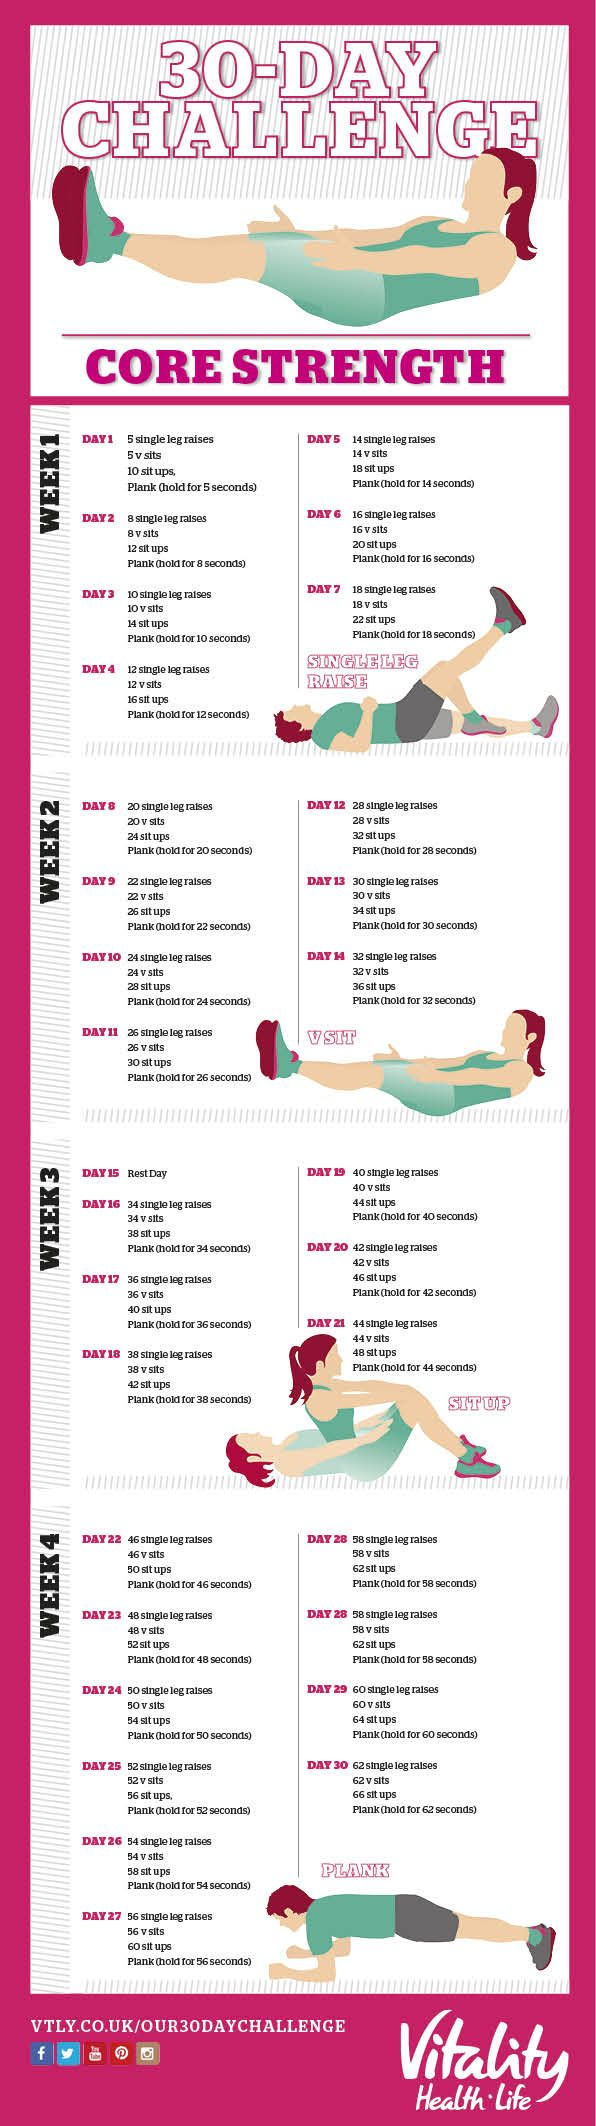 30-DAY CHALLENGE: CORE STRENGTH #coreworkouts